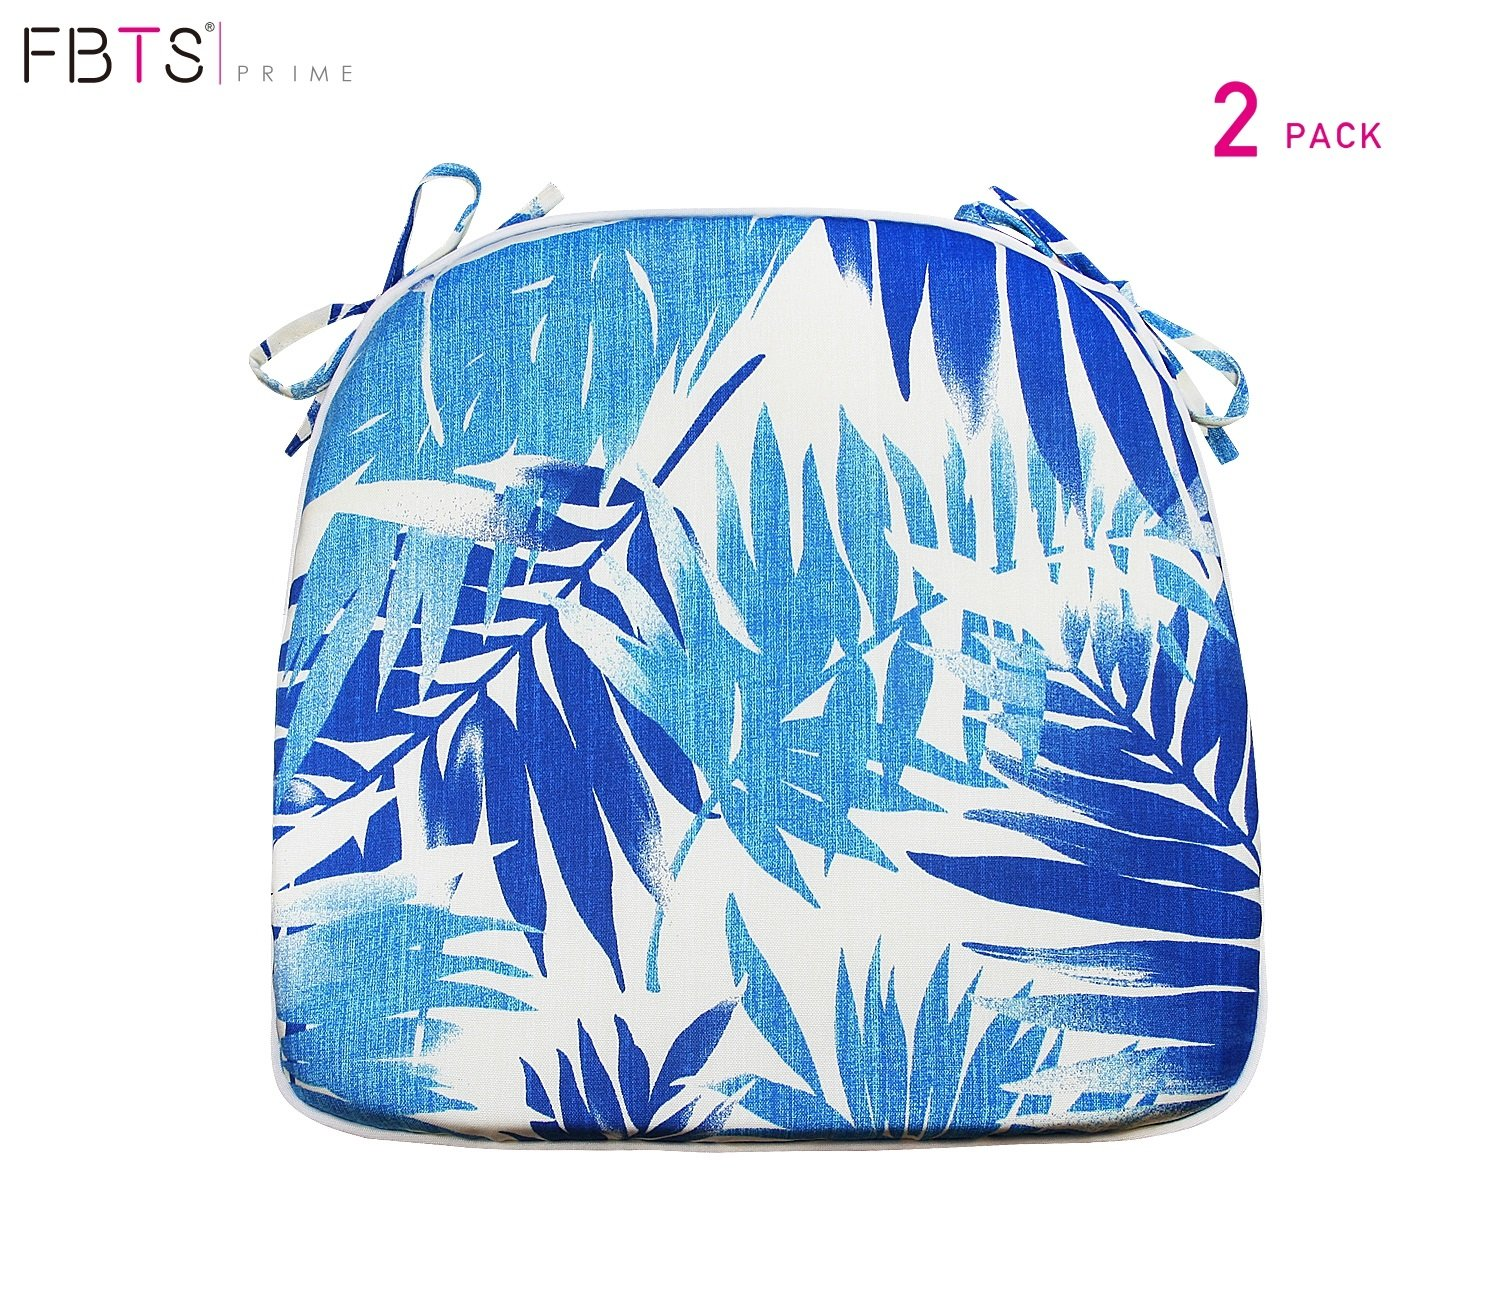 16x17 Inches Patio Seat Cushions Blue Leaf Square Chair Pads for Outdoor Patio Furniture Garden Home Office Set of 2 FBTS Prime Outdoor Chair Cushions